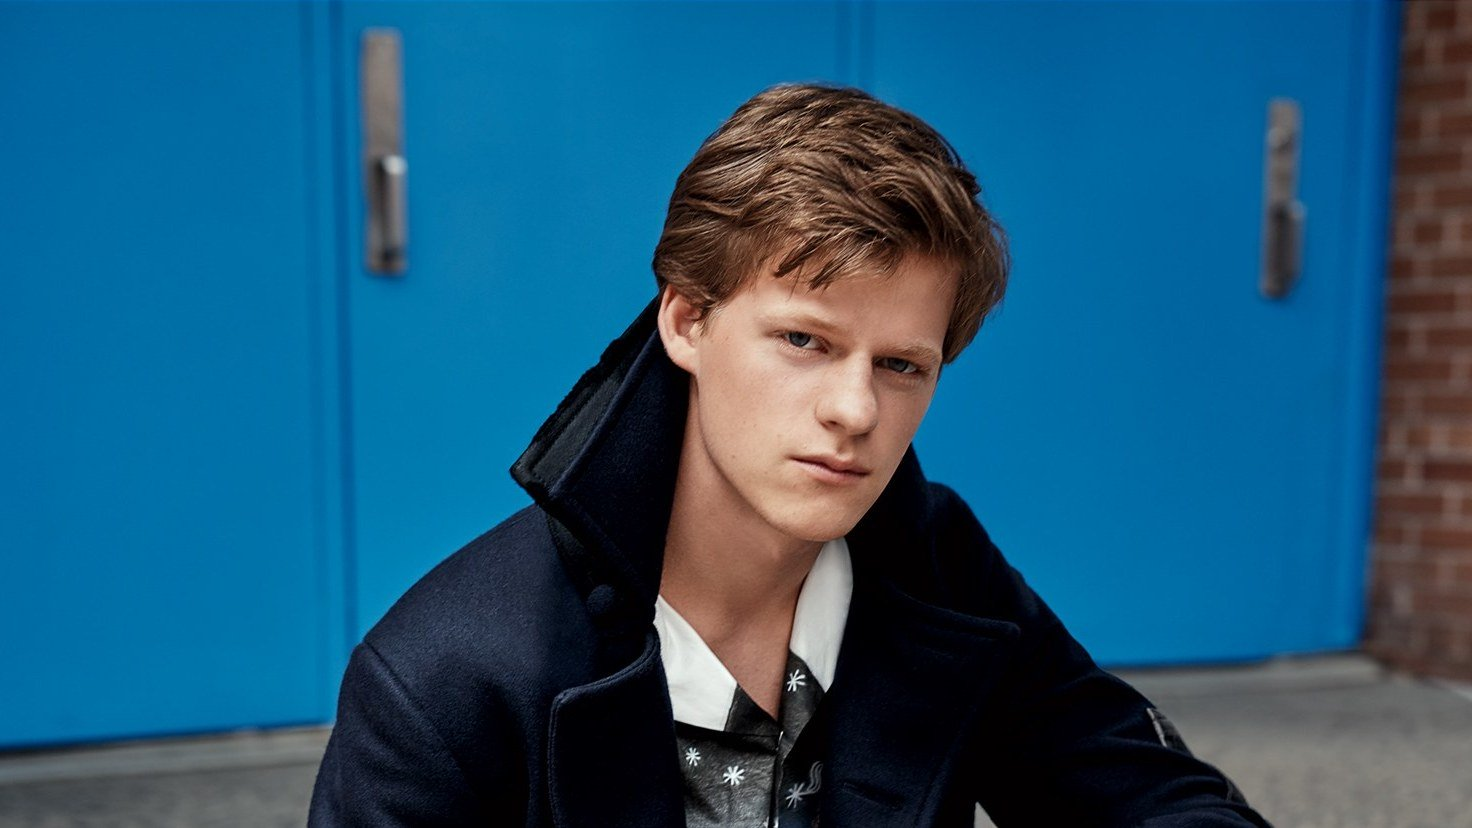 .@LadyBirdMovie and 'Three Billboards' star Lucas Hedges doesn't mind the pressure https://t.co/miBqXVIfxh https://t.co/33fzTuc8LL